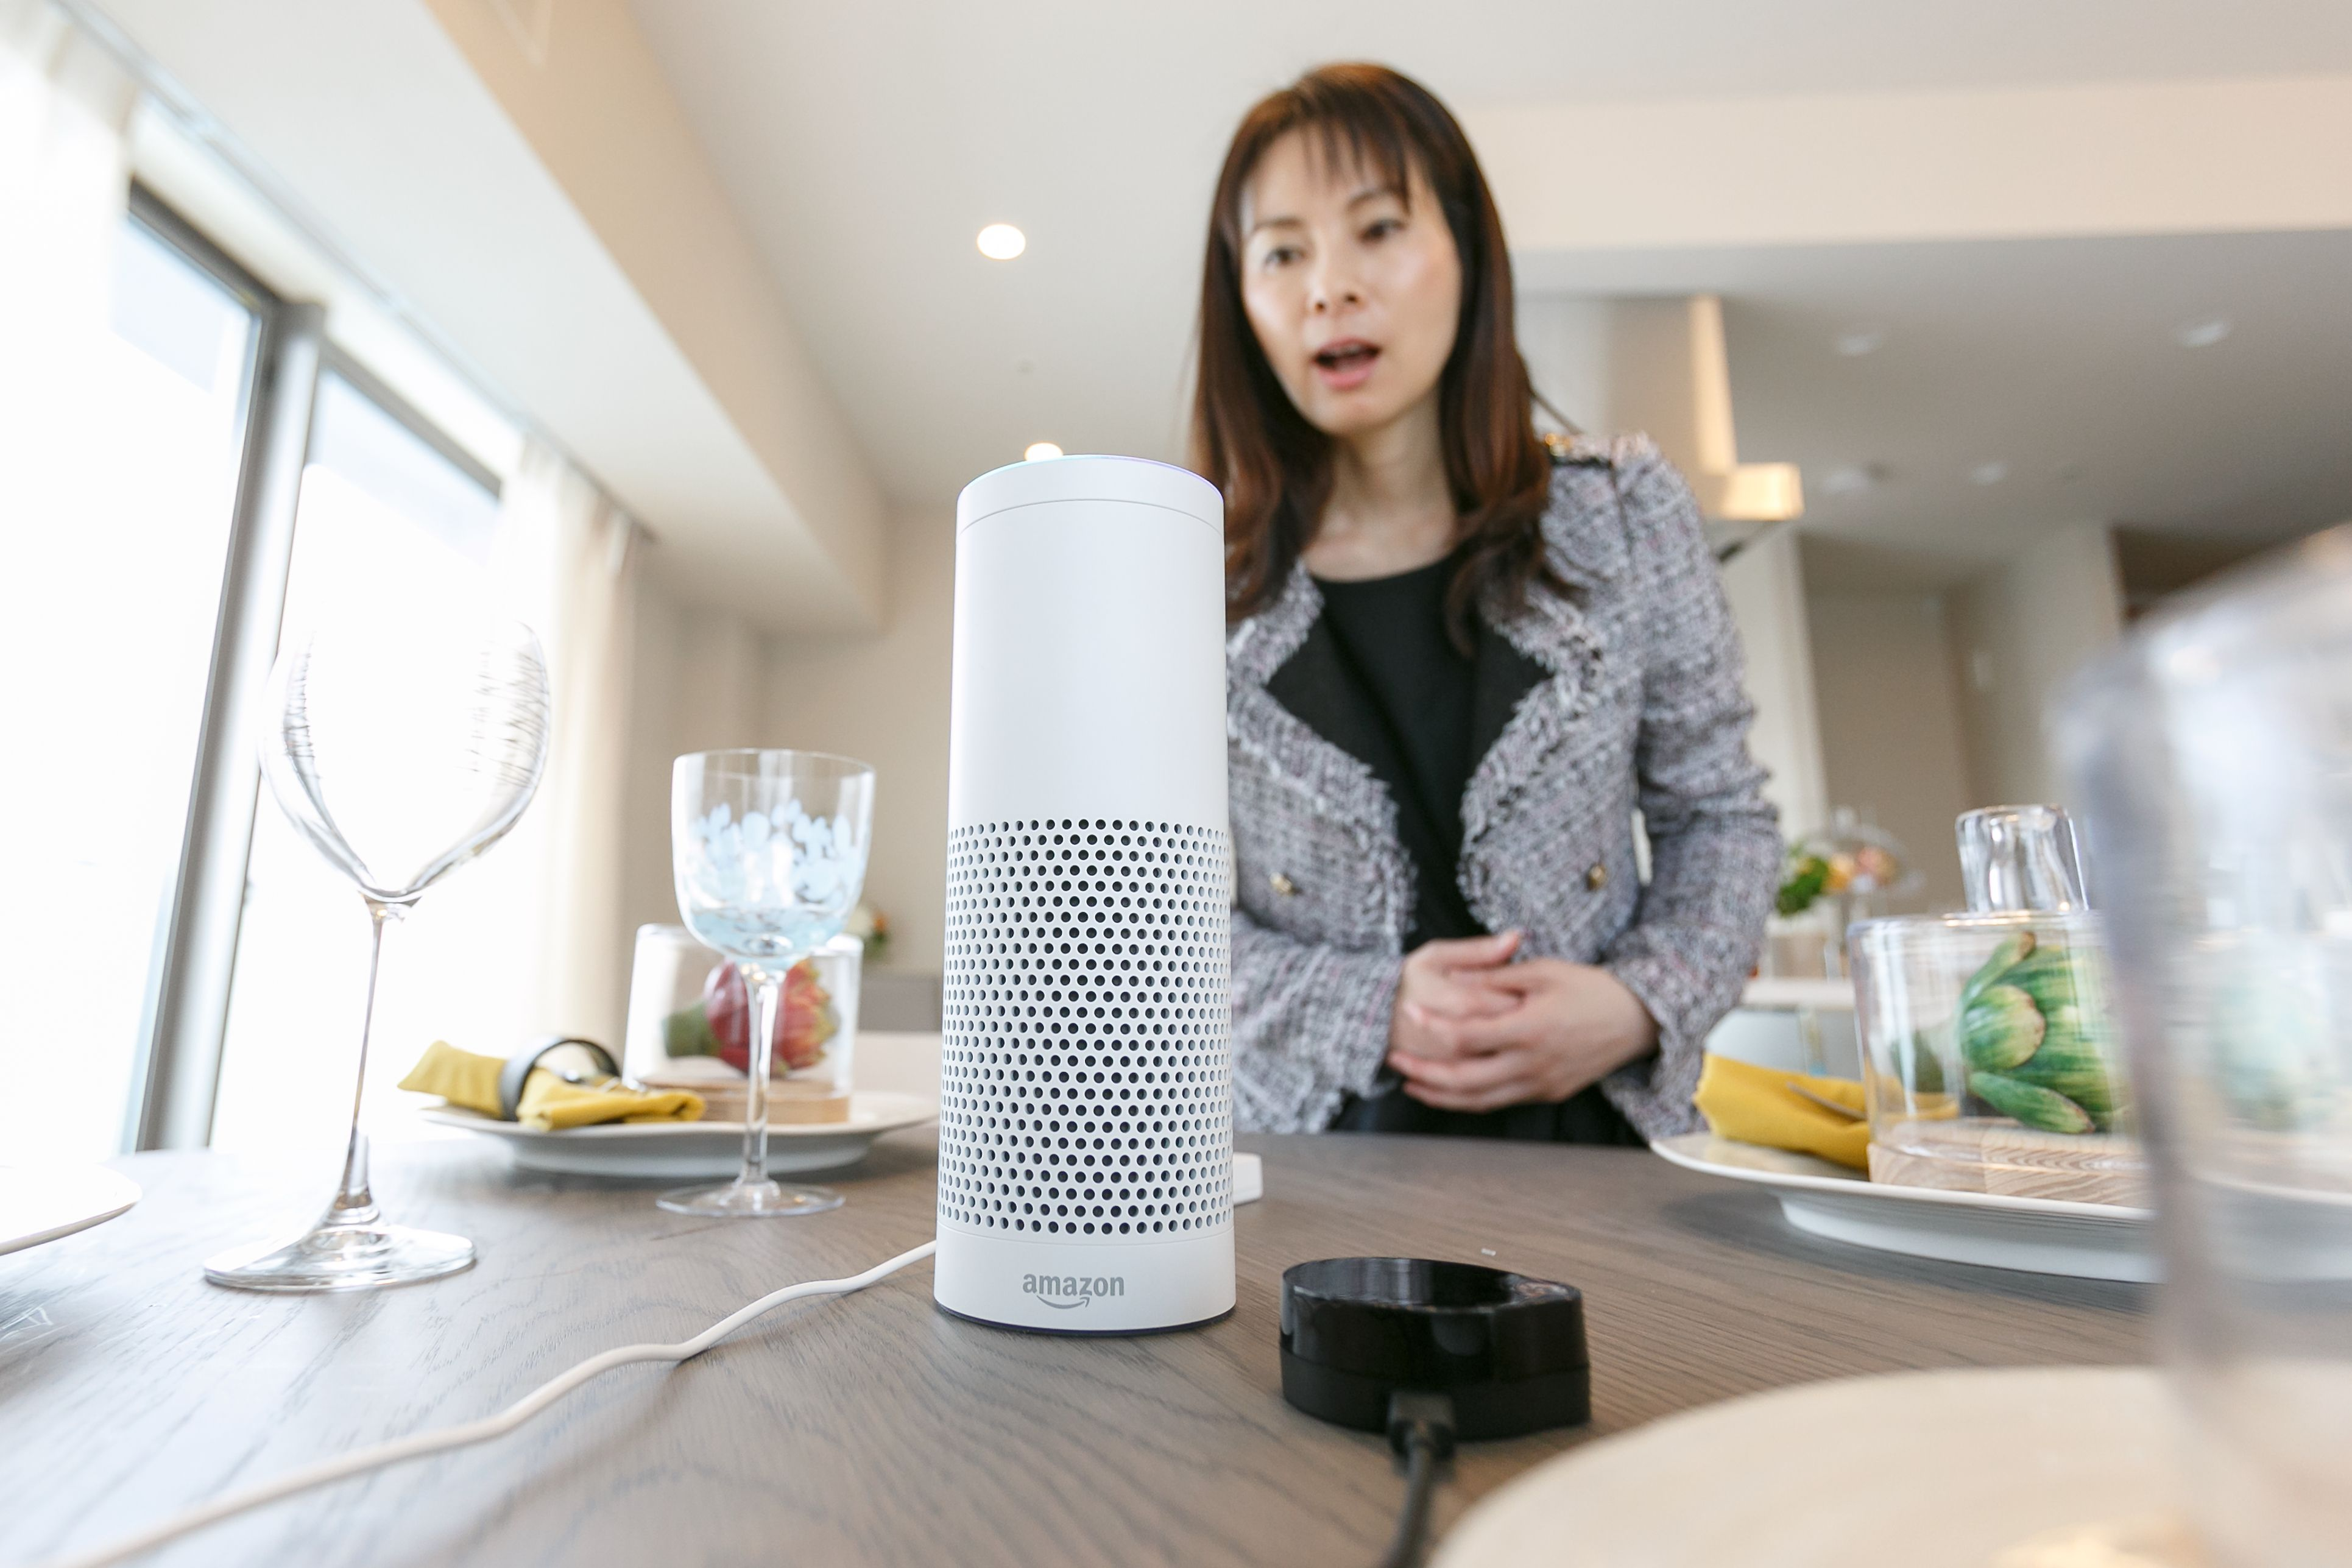 Amazon Echo Plus is a smart speaker programmed with Amazon's artificial intelligence assistant app called Alexa to control home appliances such as TV and lights through human voiceAmazon Echo Plus at MID Base Tower Residence, Yokohama, Japan - 22 Nov 2017